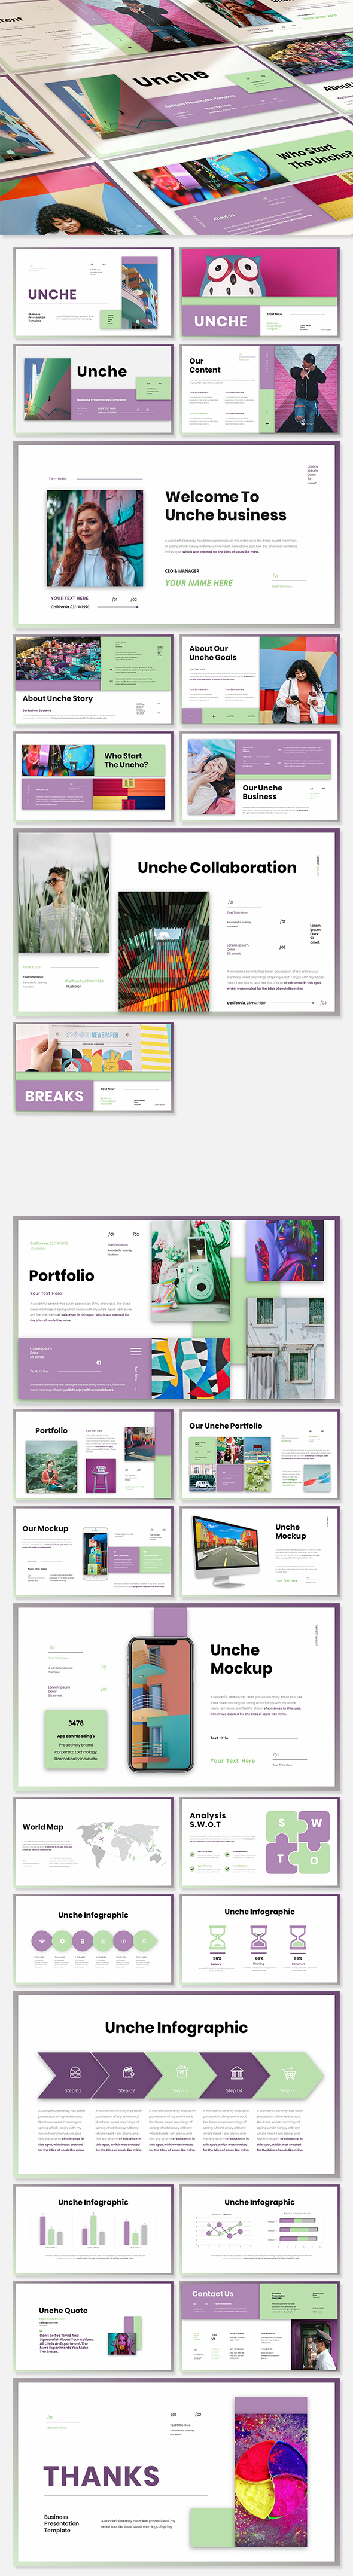 Unche - Business Presentation PowerPoint Template